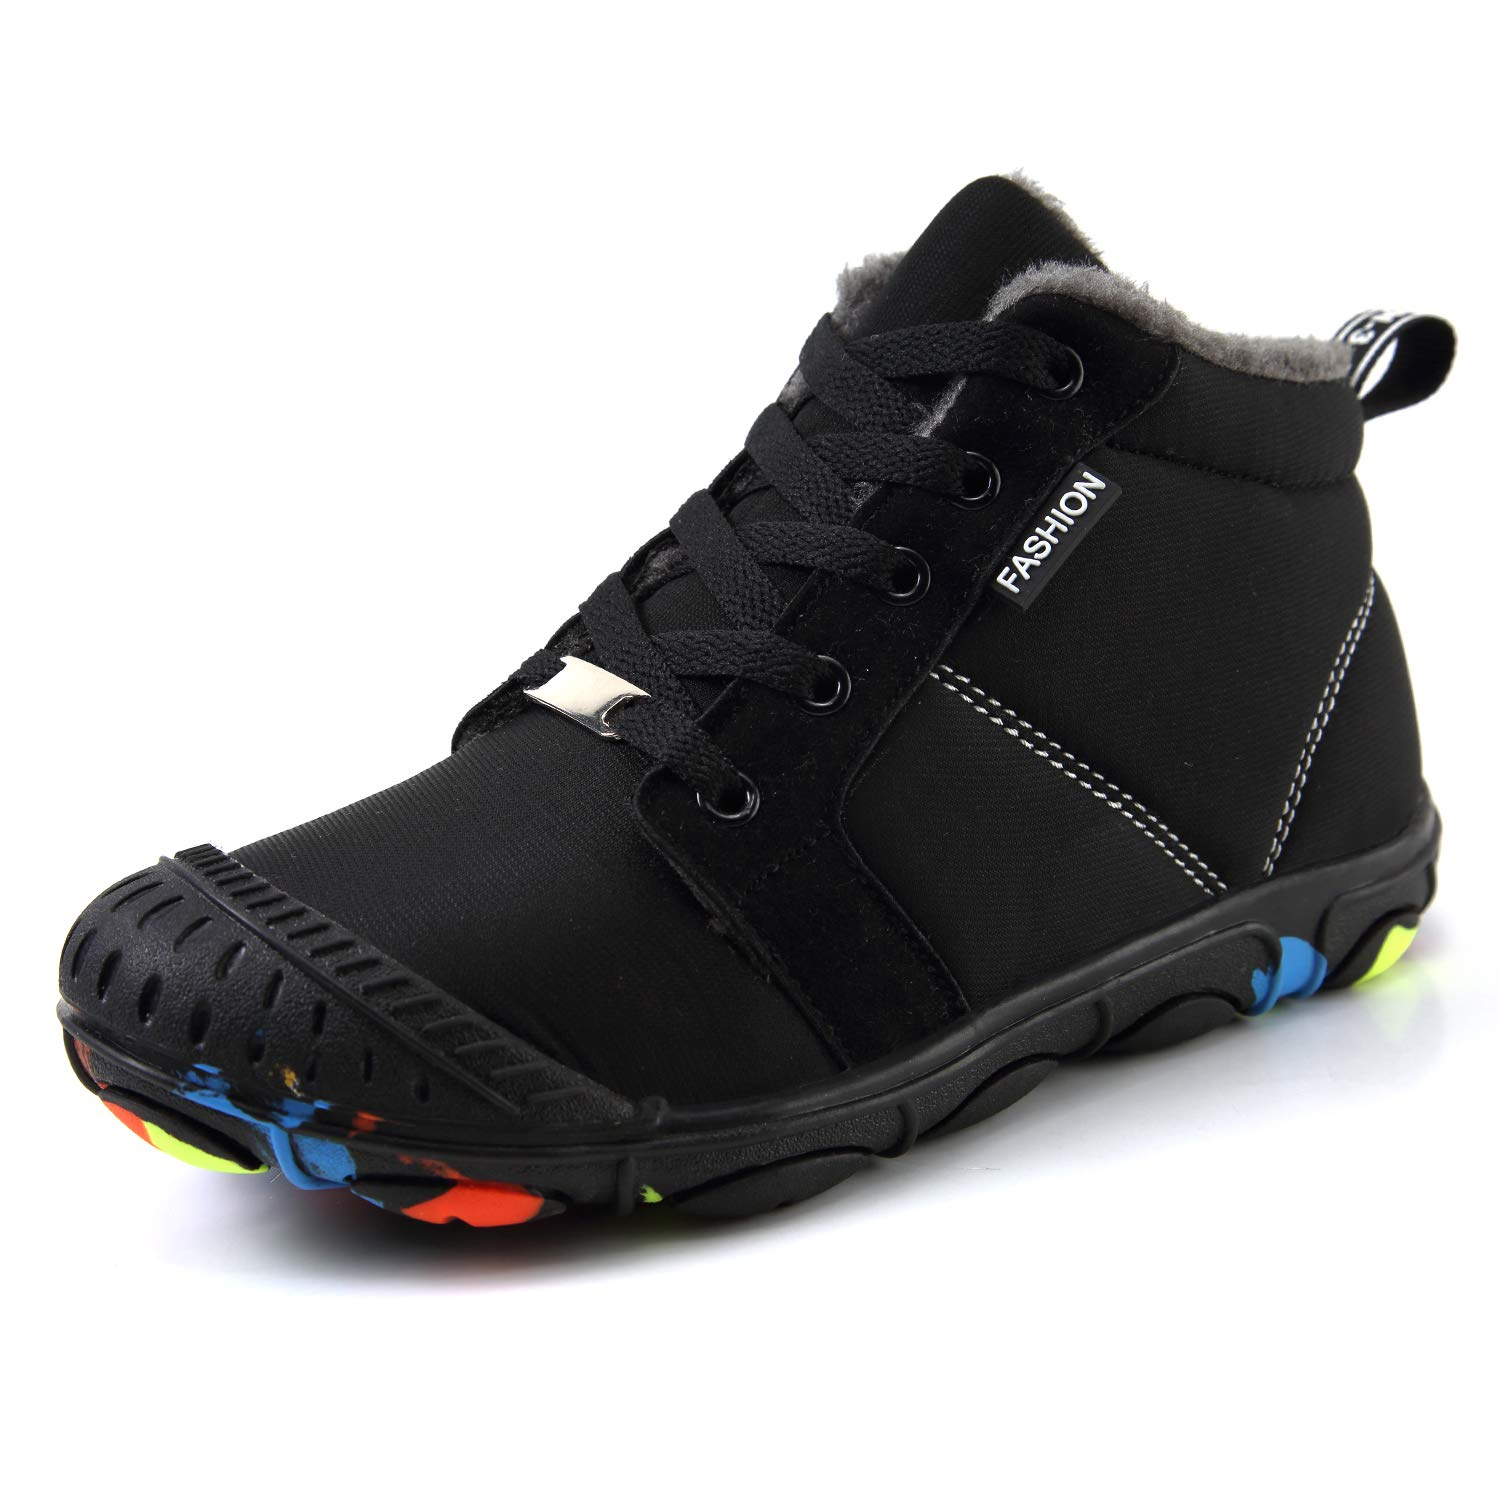 SMajong Boys Girls Winter Snow Boots Waterproof Lace-up Warm Fur Lined Ankle Booties Winter Kids Shoes Martin Boots